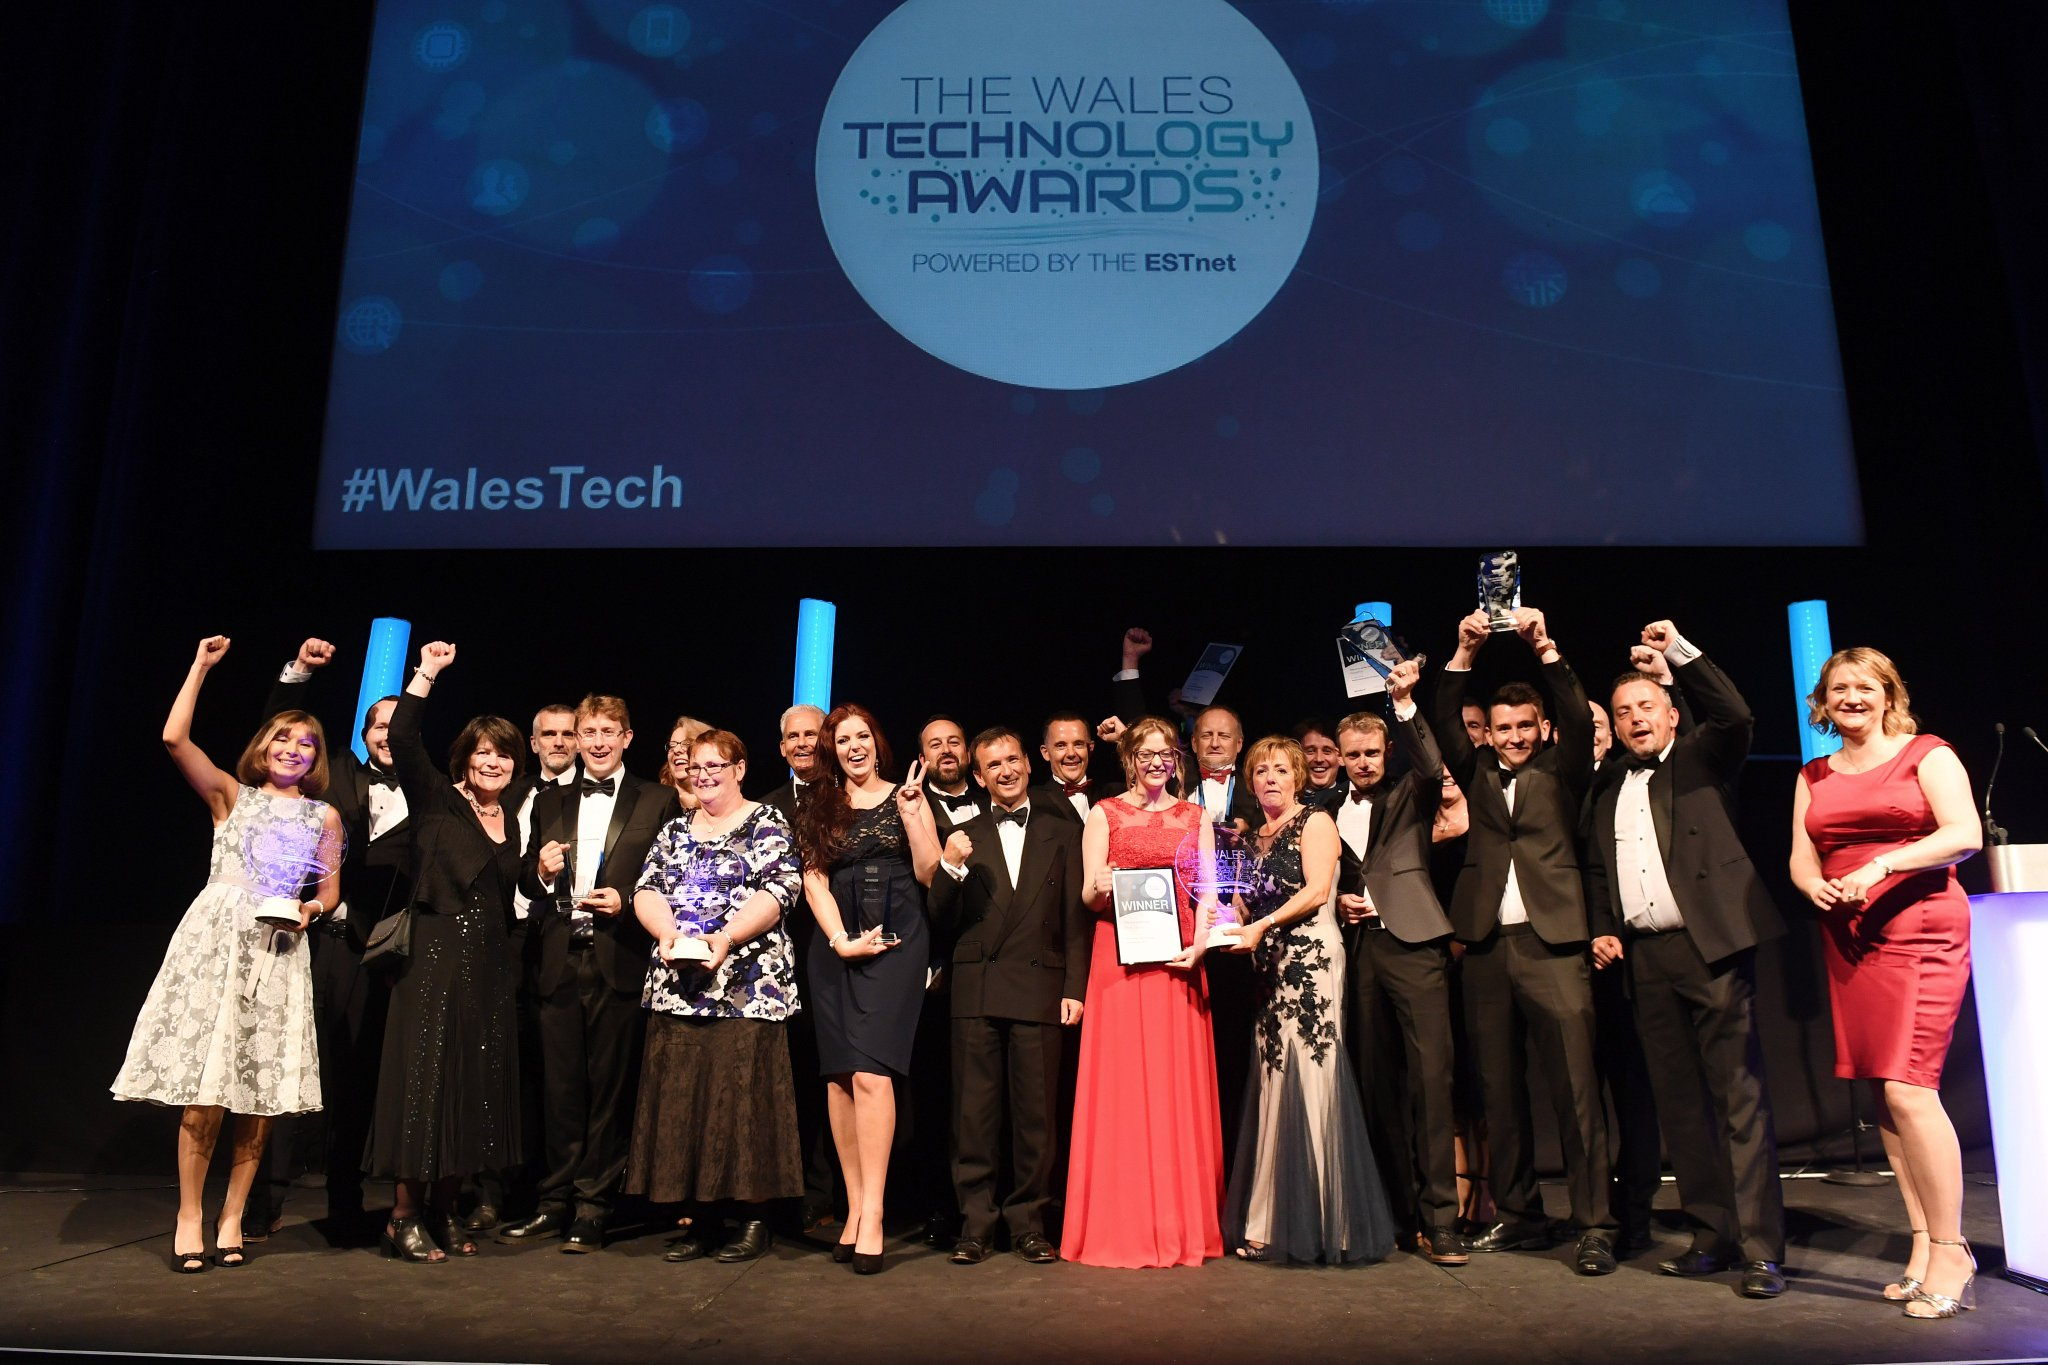 The Wales Technology Awards is the front page of today's Western Mail #Business section. Take a look here https://t.co/DzBxTSKngv #WalesTech https://t.co/kg58sU1moA